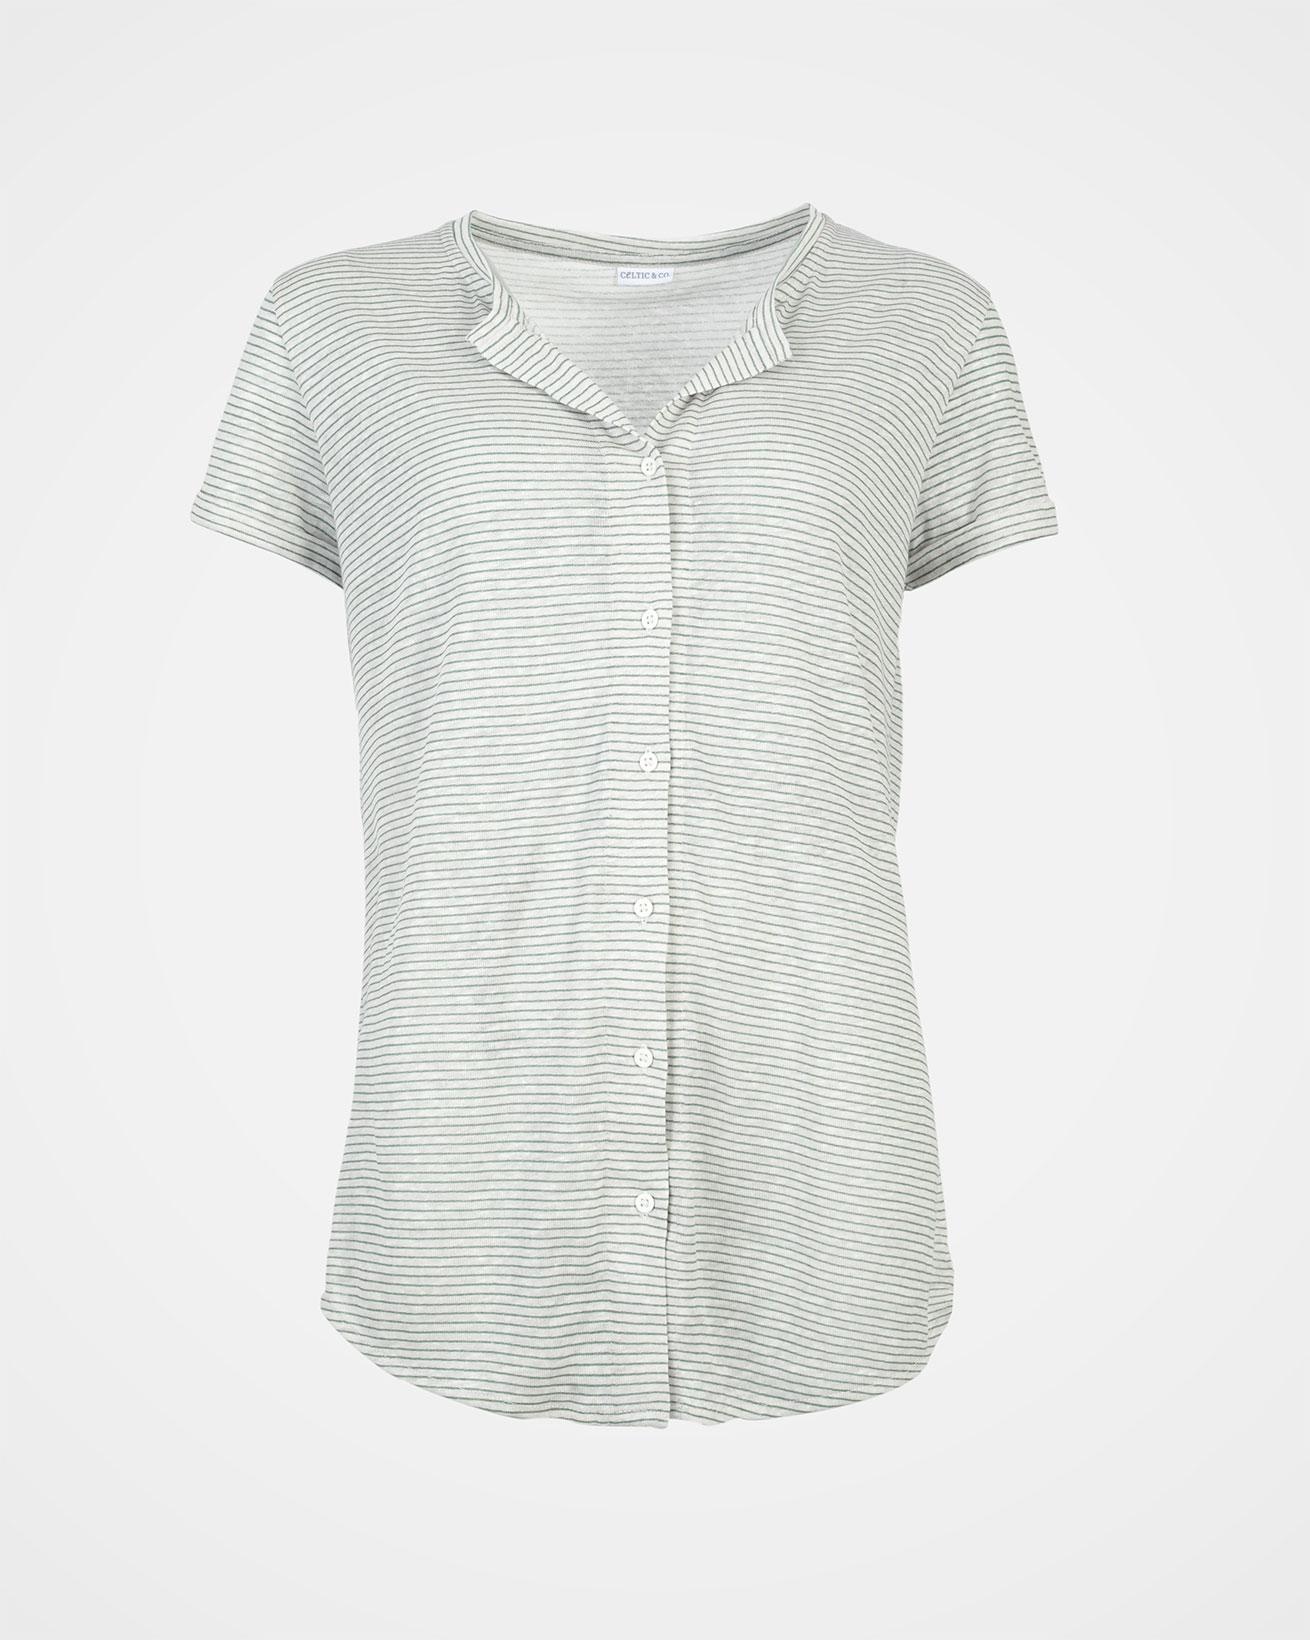 7682_linen-button-through-top_ecru-sage-fine-stripe_front.jpg